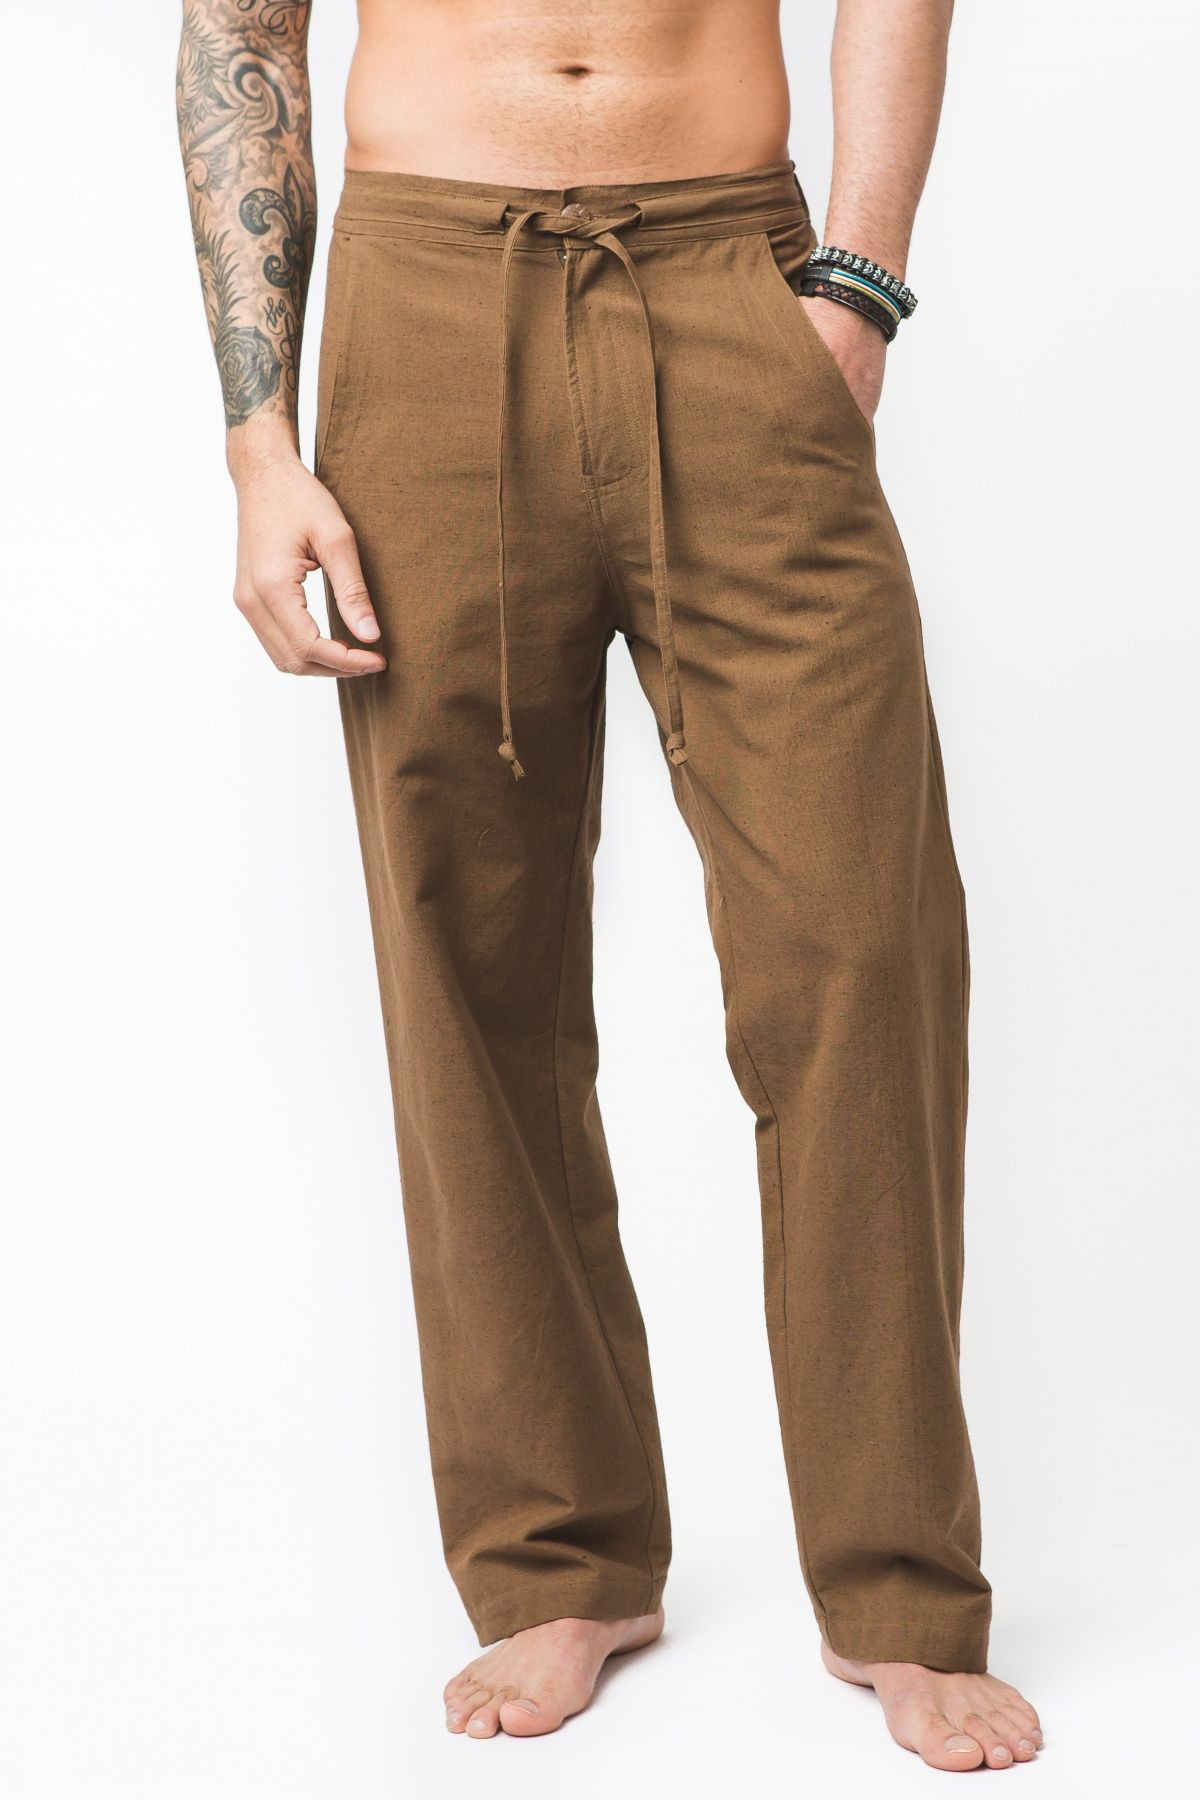 a530d3b561f8c Nepali Hemp Pants from Earthbound Trading Co. #earthboundtrading #mensstyle  #hemp